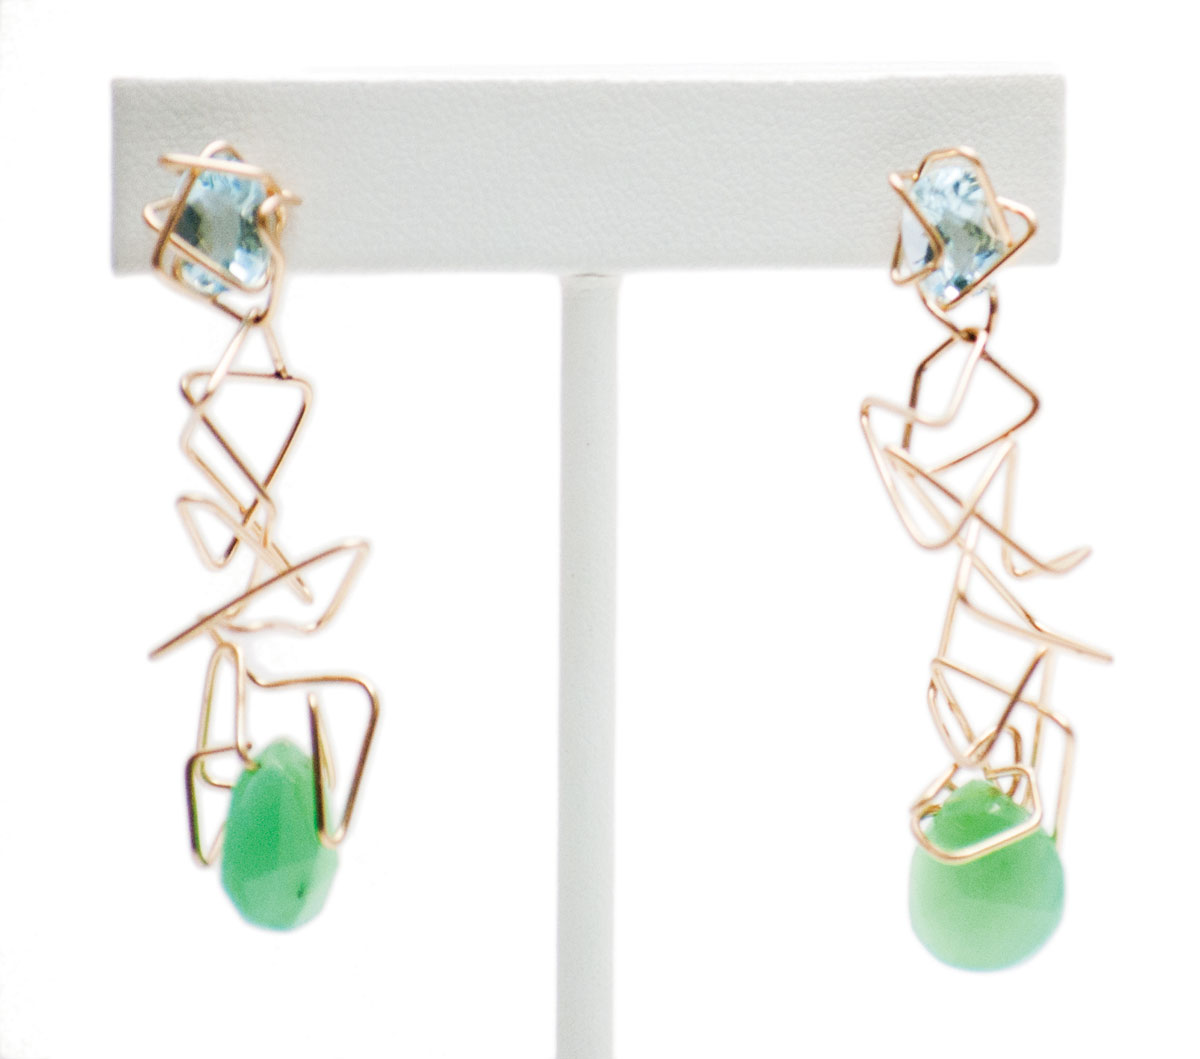 Blue topaz, chrysoprase earrings